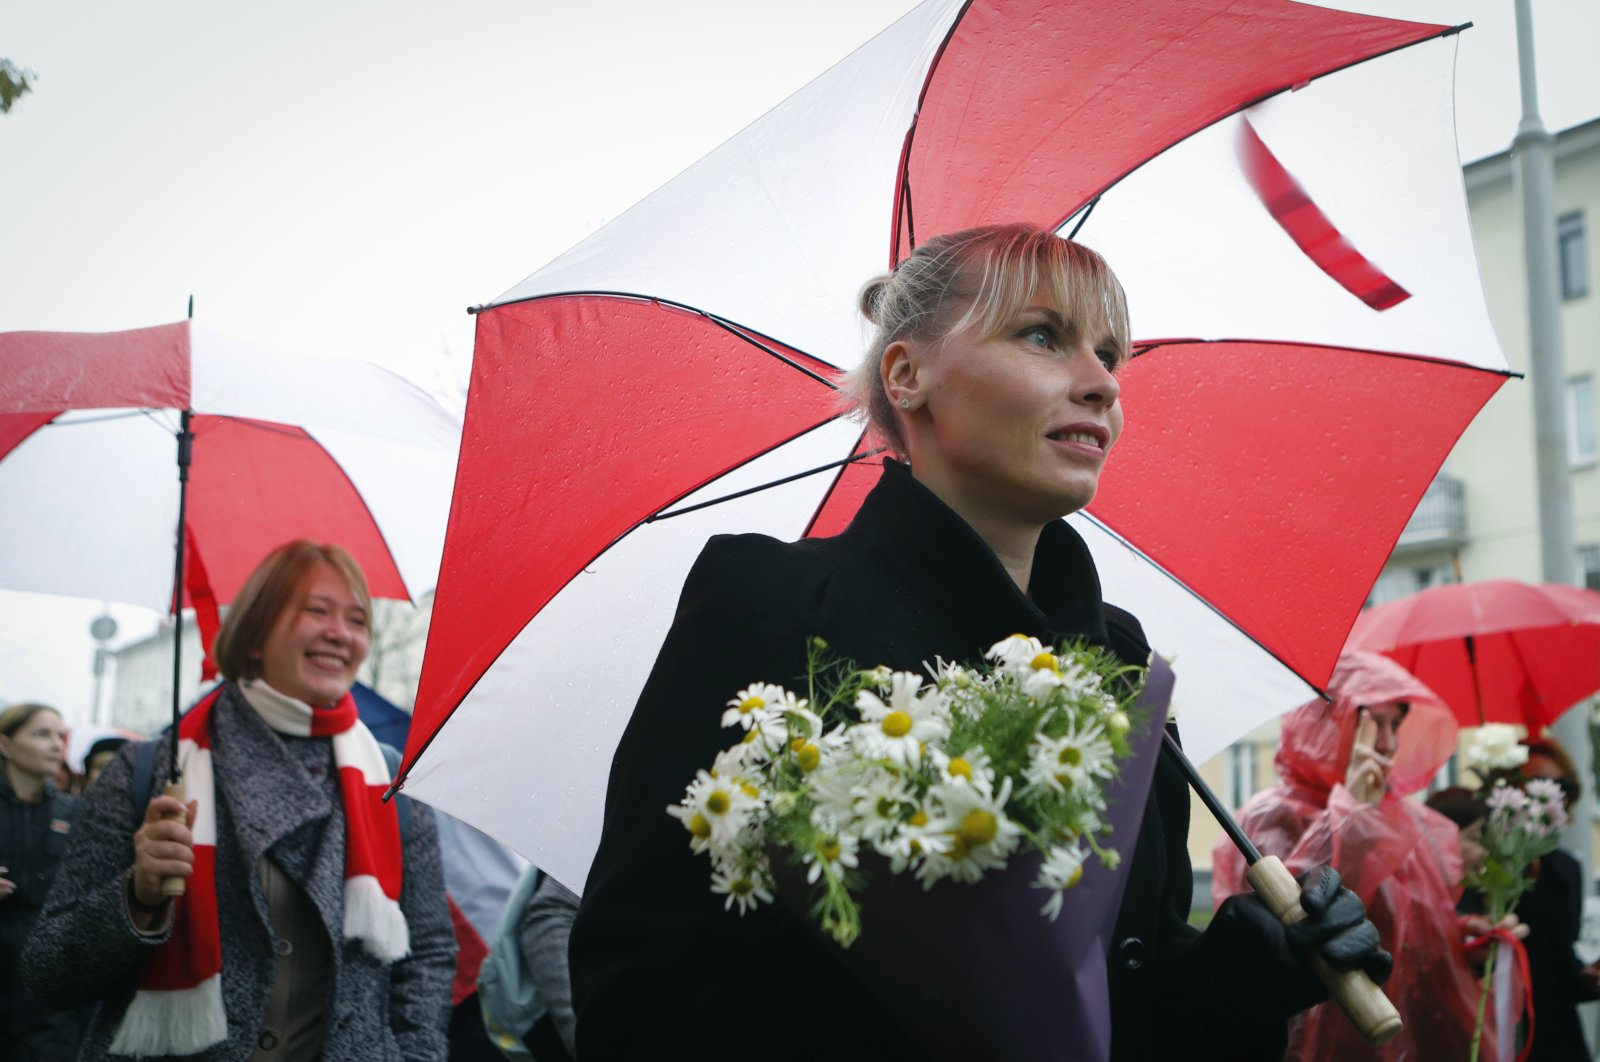 Belarusian women with umbrellas in the colors of the old Belarusian national flag attend an opposition rally to protest the official presidential election results in Minsk, Belarus, Saturday, Oct. 24, 2020. (AP Photo)